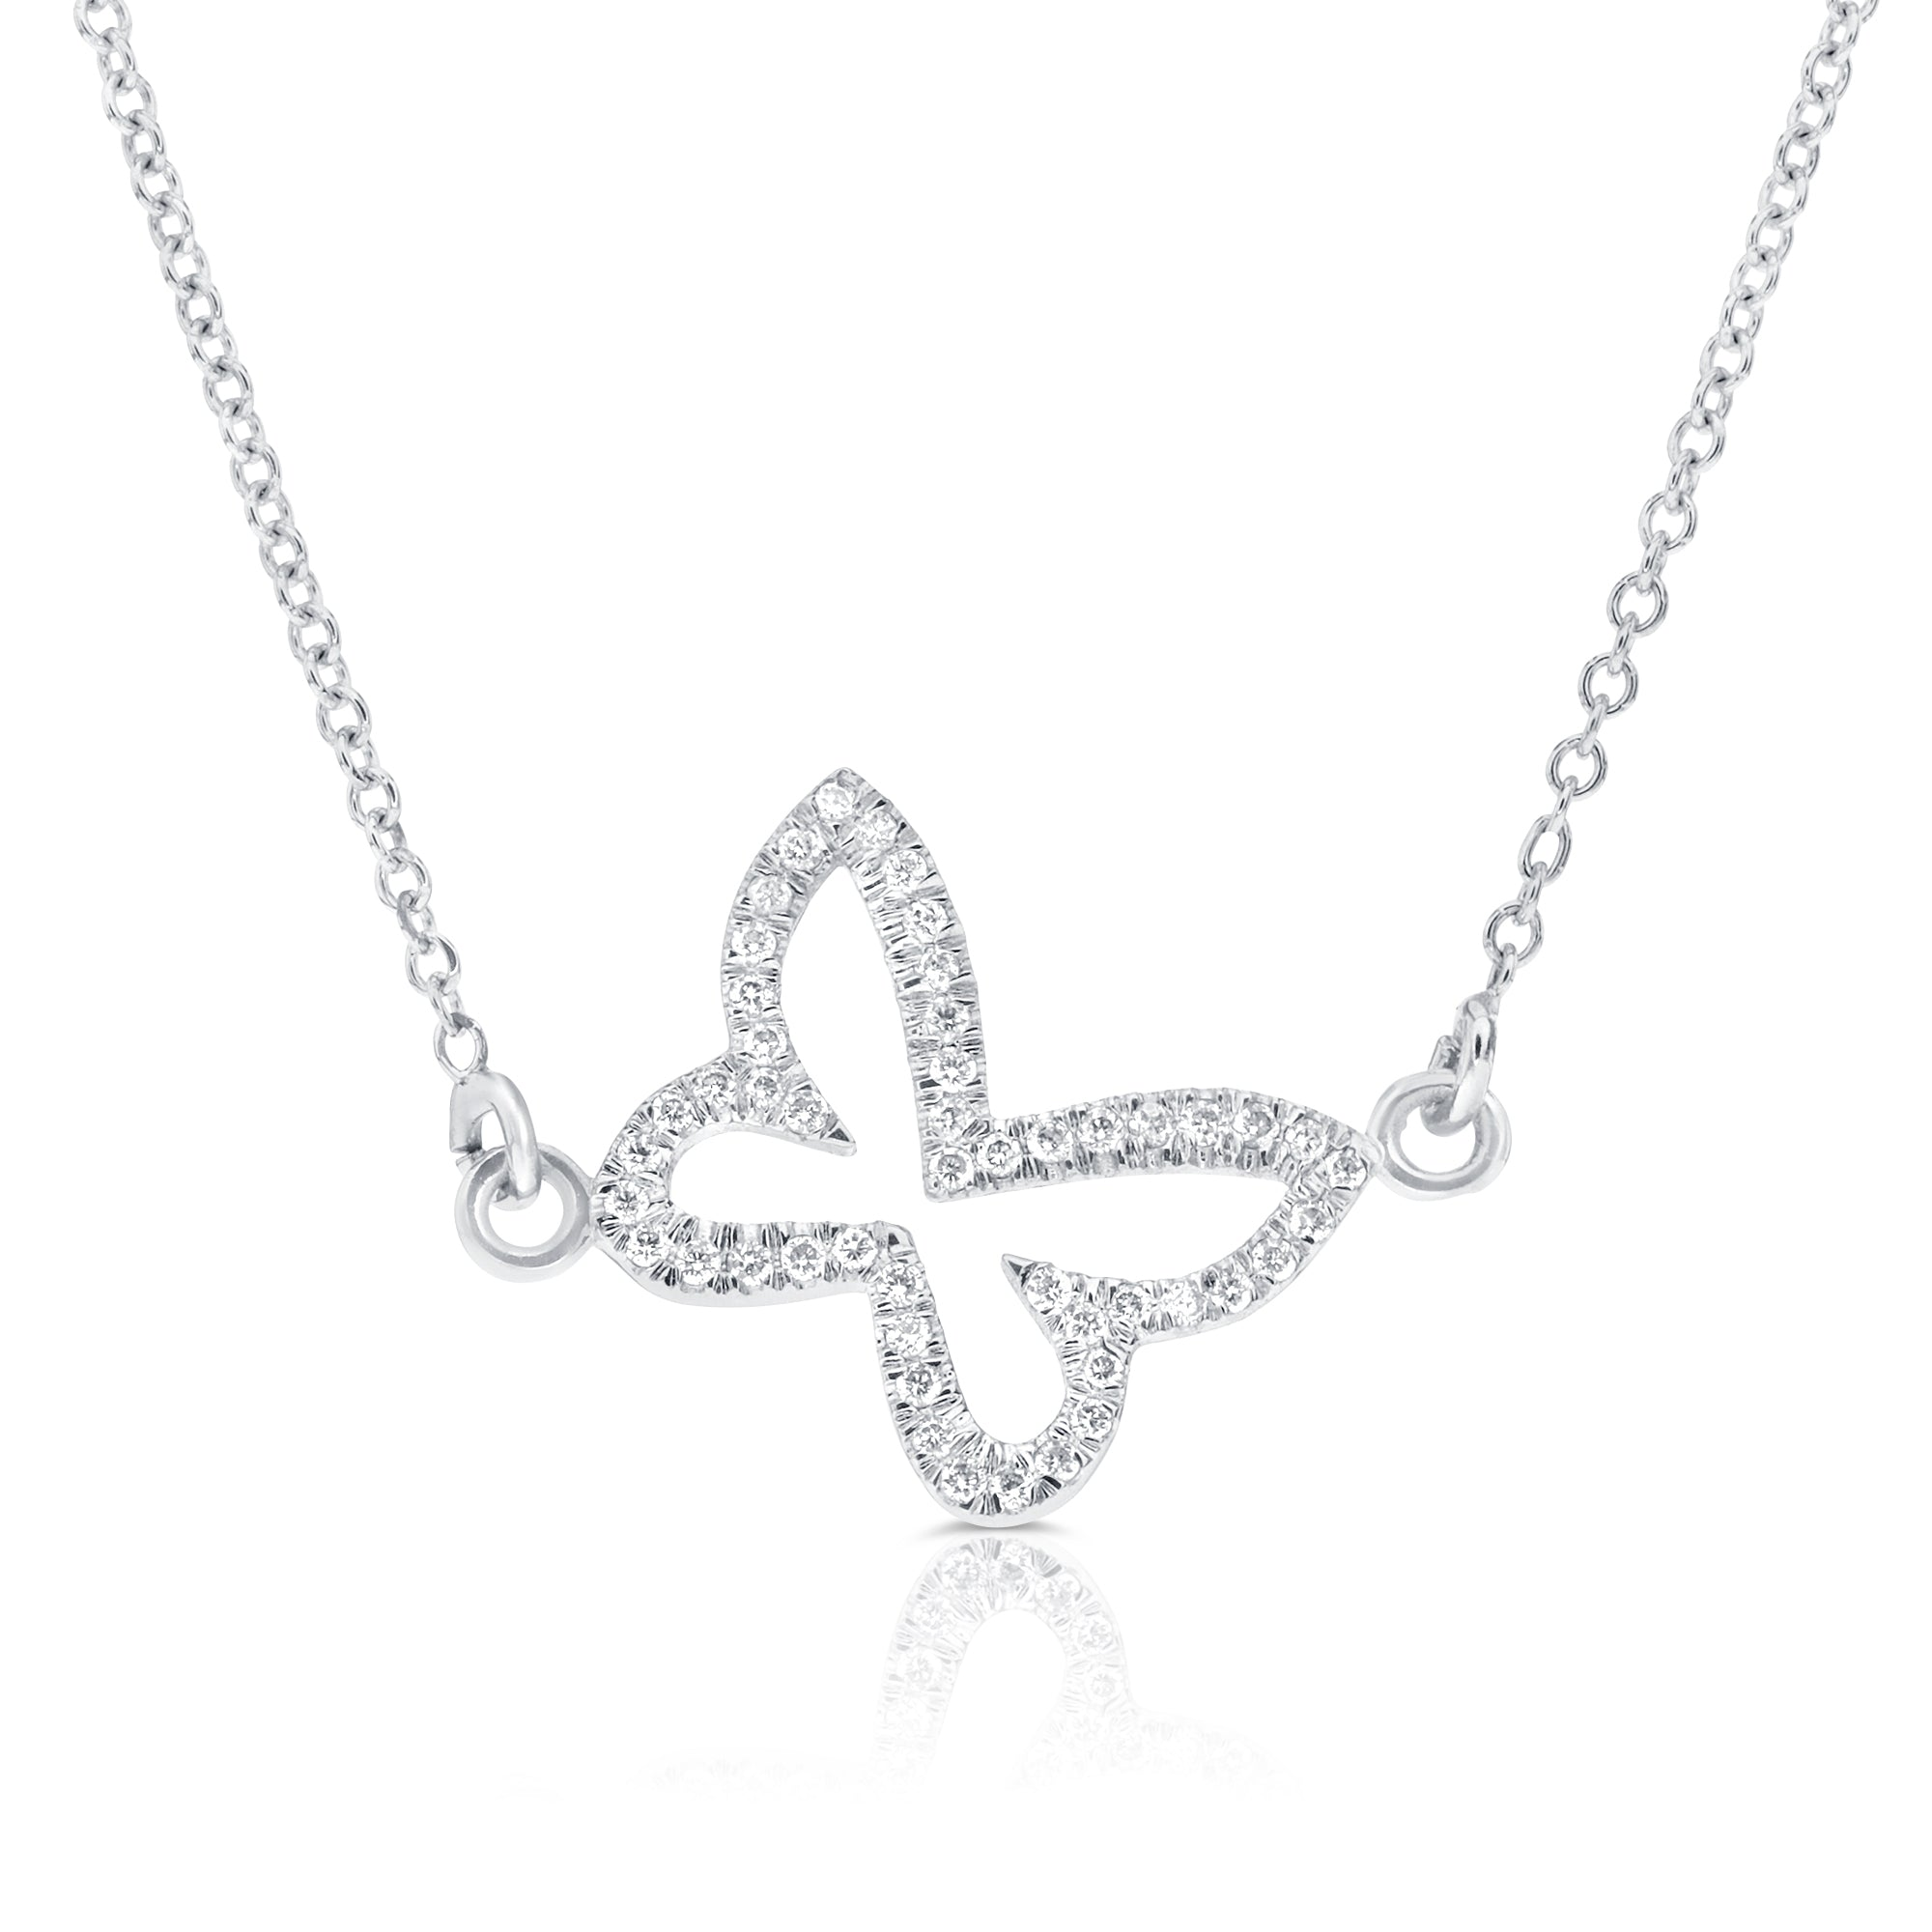 Butterfly Diamond necklace, 0.21ct diamond, 14K white gold-Diamond necklace-Diamond butterfly pendant-Gift for her - SevenCarat